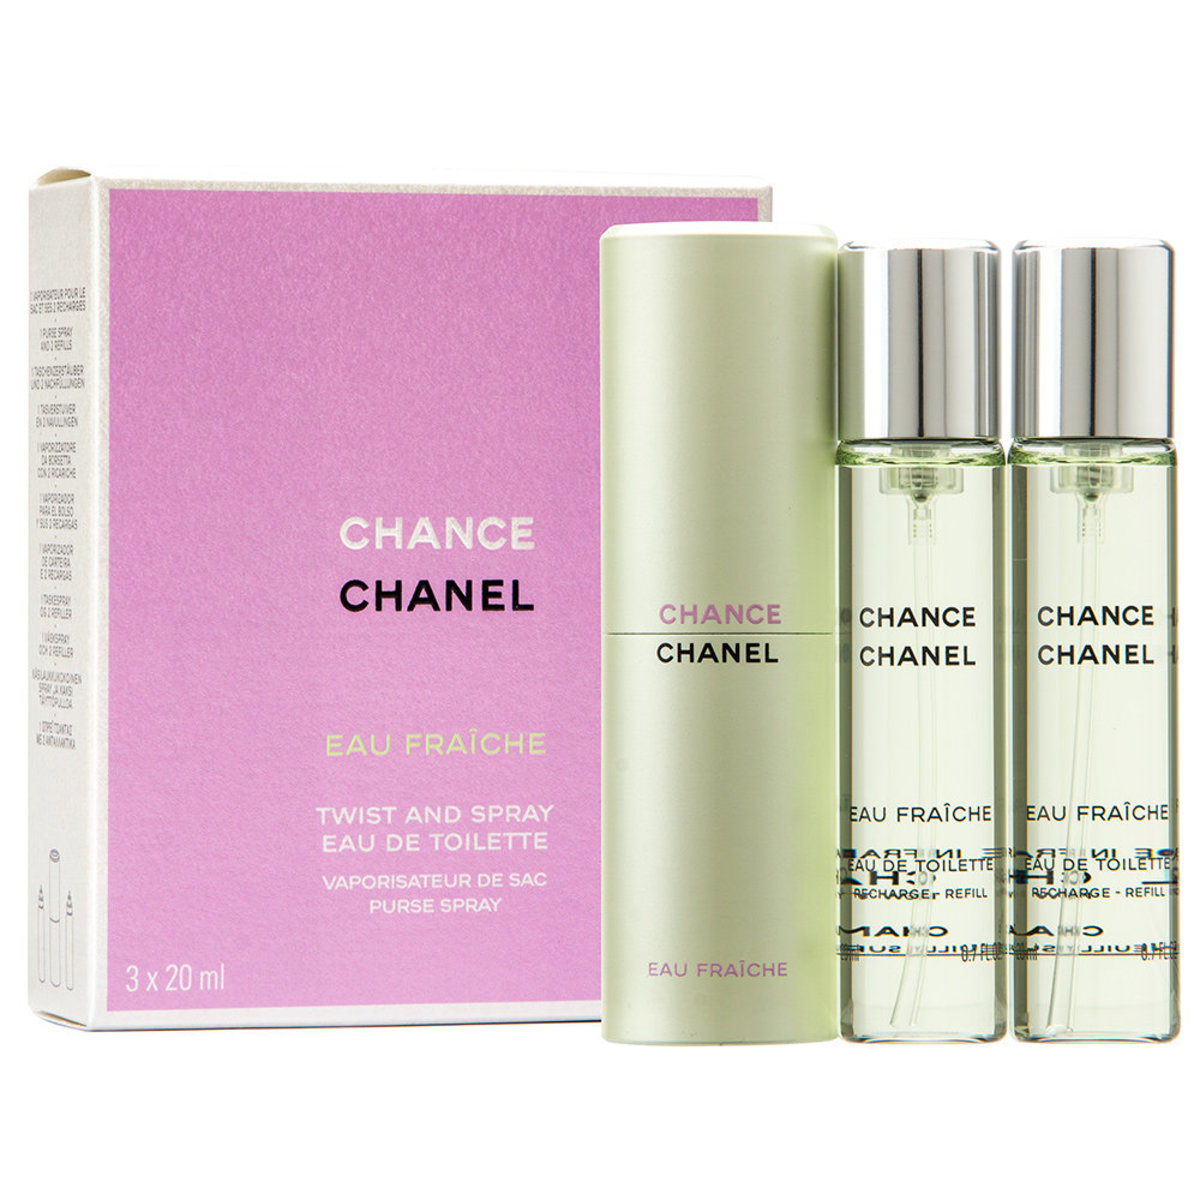 Chanel Chance Eau Fraiche Twist & Spray Eau De Toilette 3x20mL